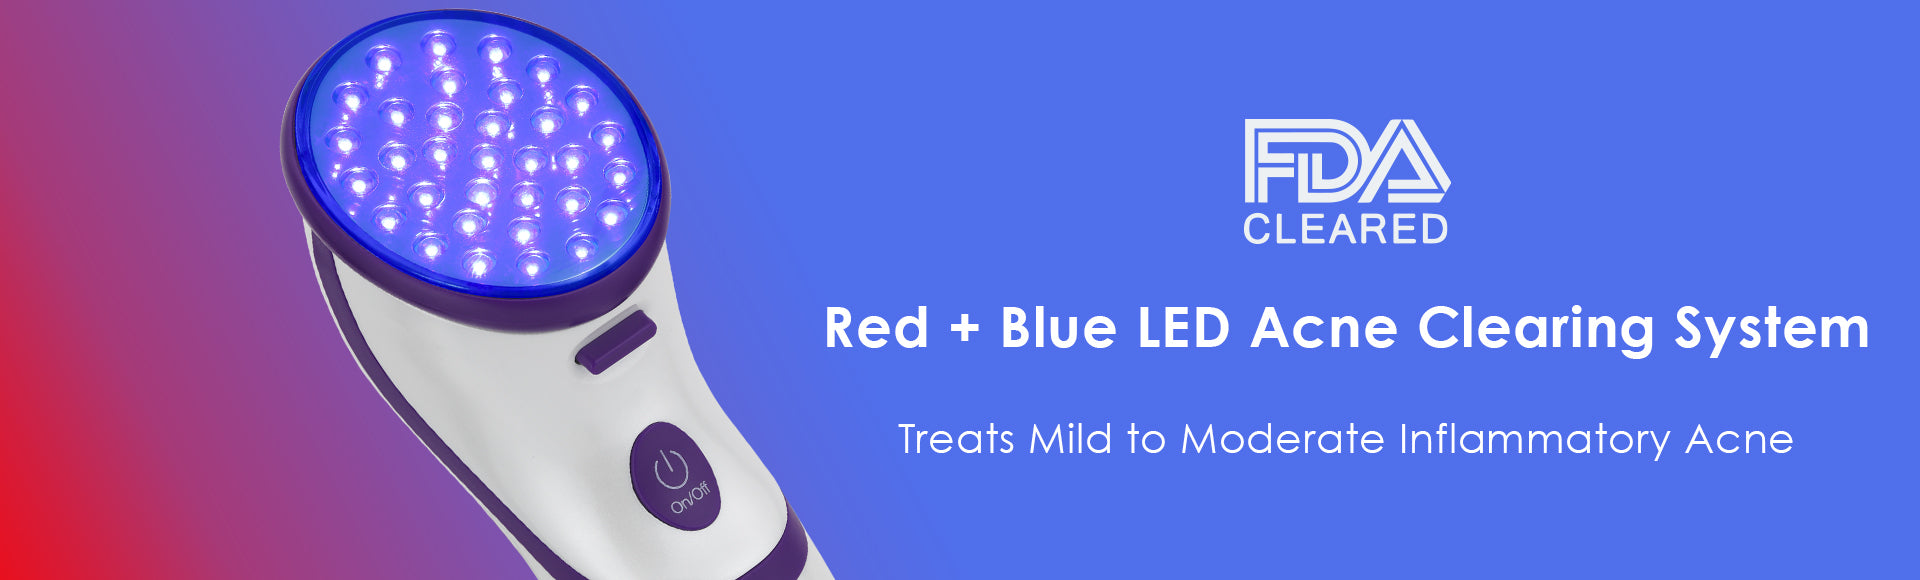 Clear Bilight Red + Blue LED Acne Clearing System